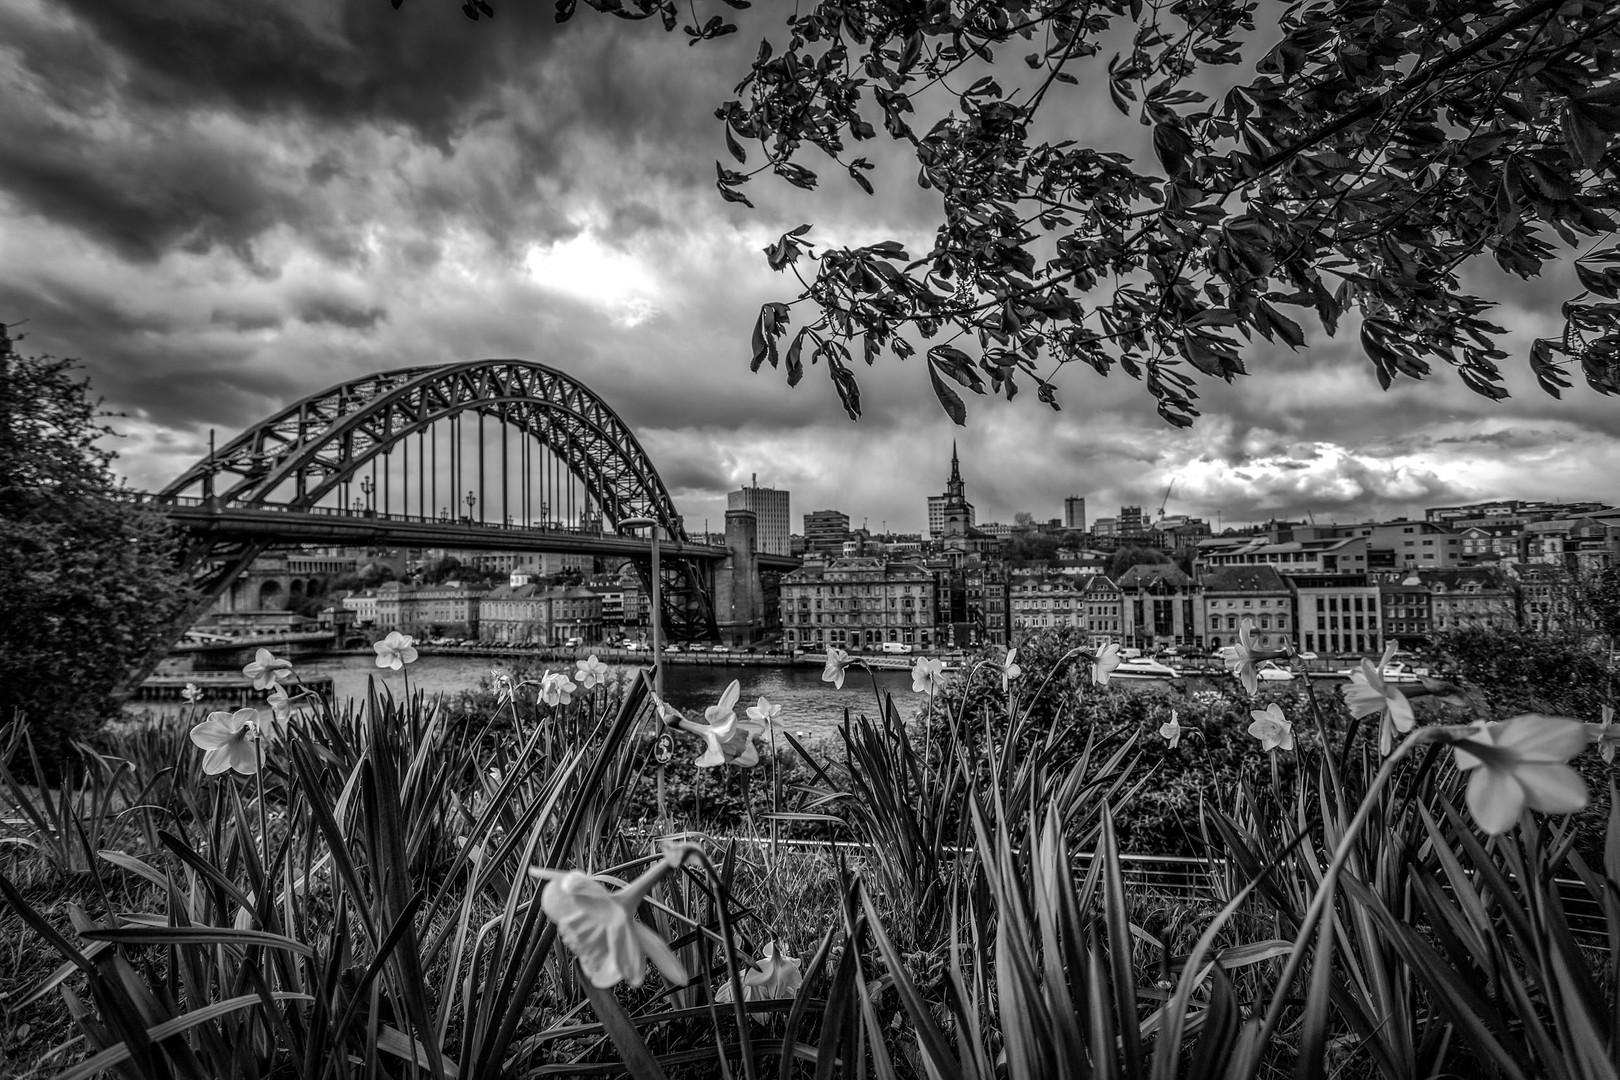 Newcastle B&W landscape